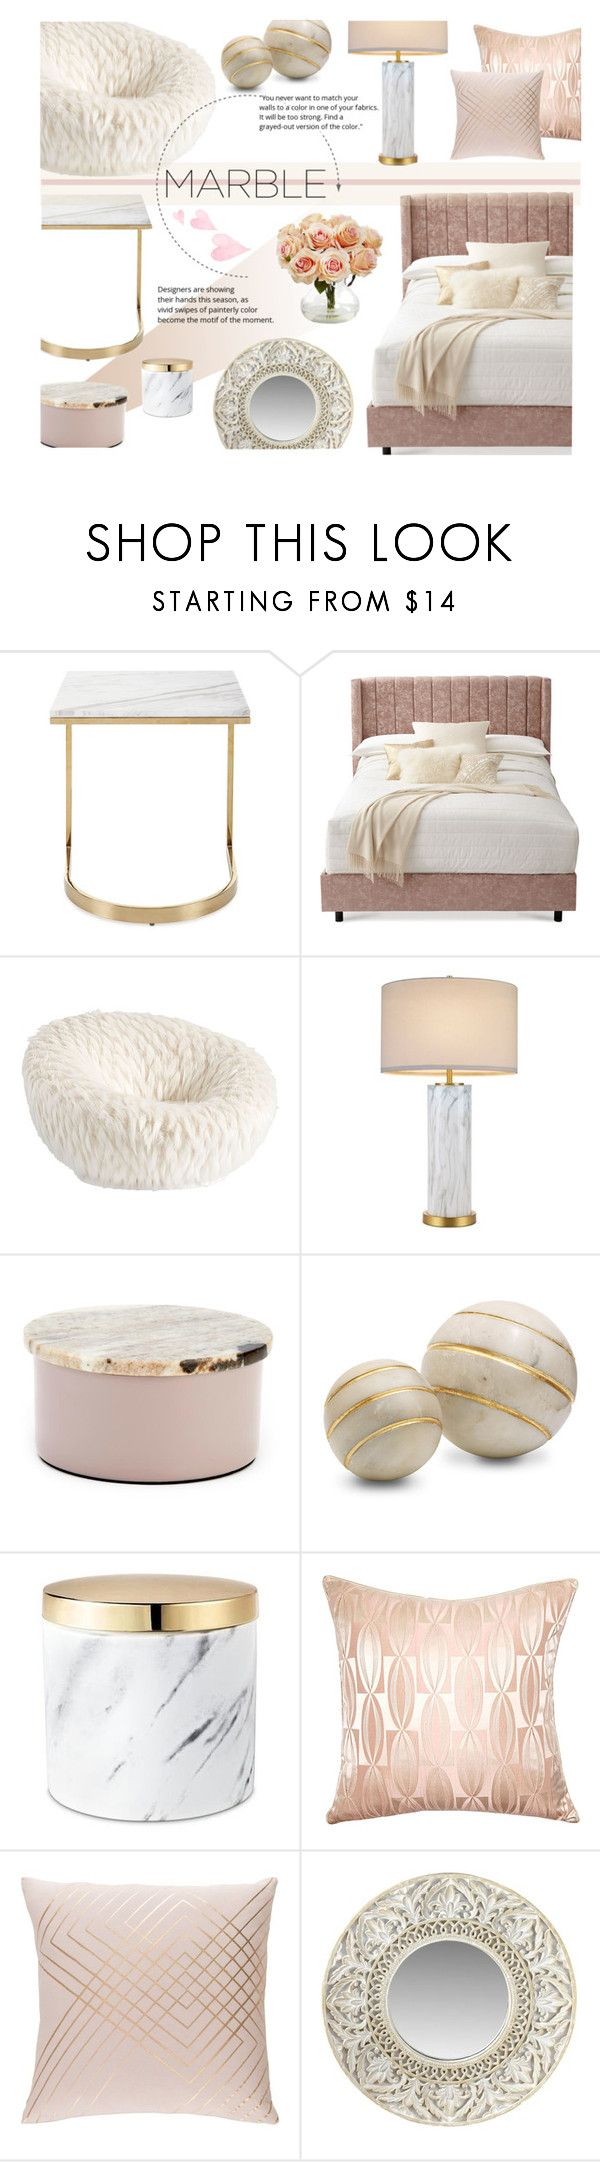 """""""Marble Elegance, Vol I"""" by nvoyce ❤ liked on Polyvore featuring interior, interiors, interior design, home, home decor, interior decorating, Bernhardt, PBteen, Broste Copenhagen and Squarefeathers"""